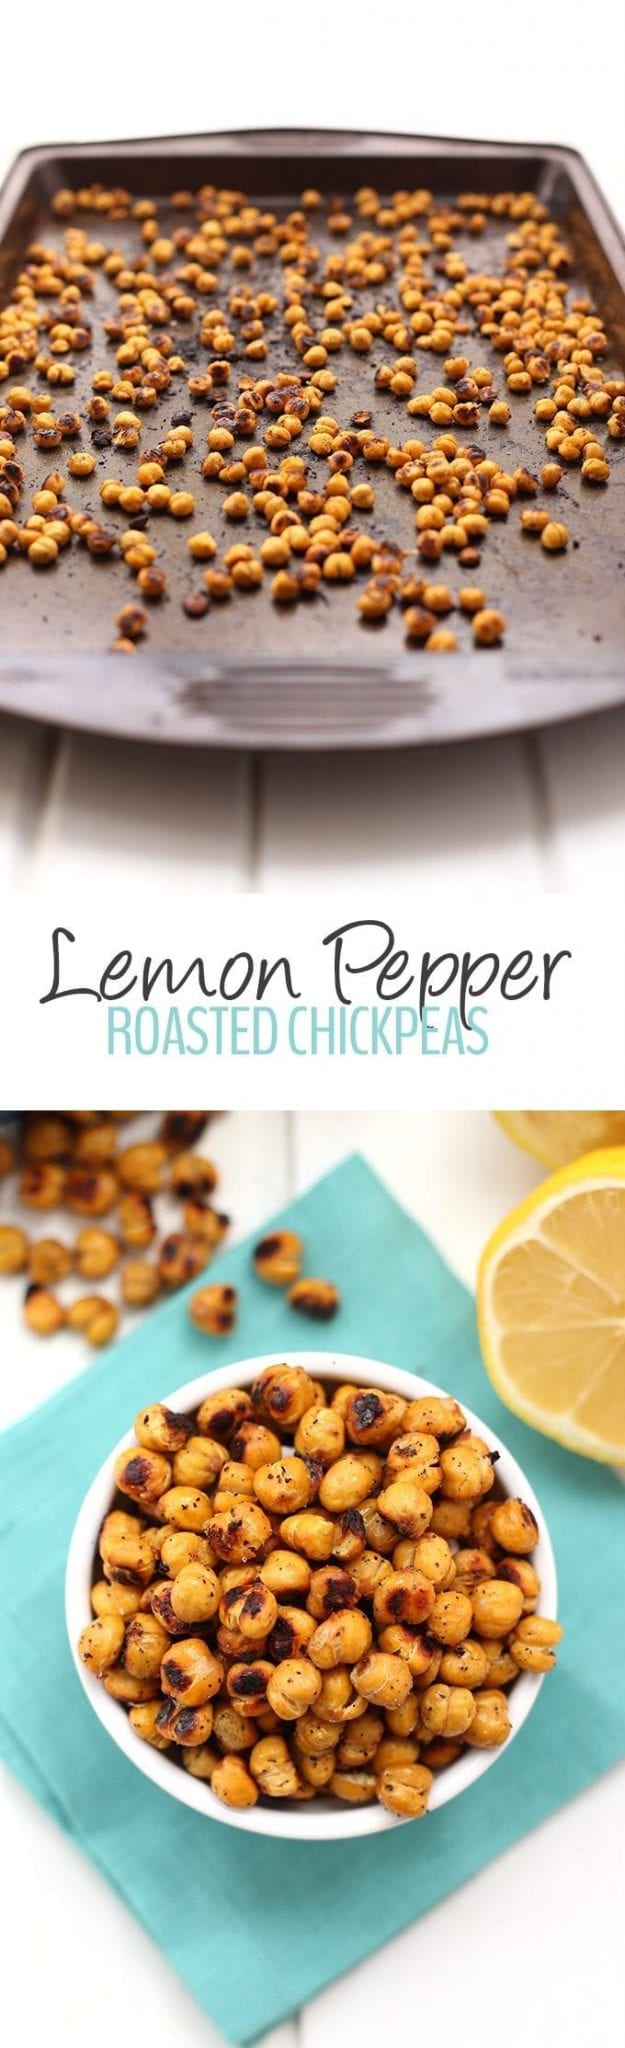 Swap out those bags of chips for these crunchy and zesty Lemon Pepper Roasted Chickpeas. They make the perfect snack option or salad or soup topper for a bit of extra crunch! Just 5 ingredients and you're ready to go.